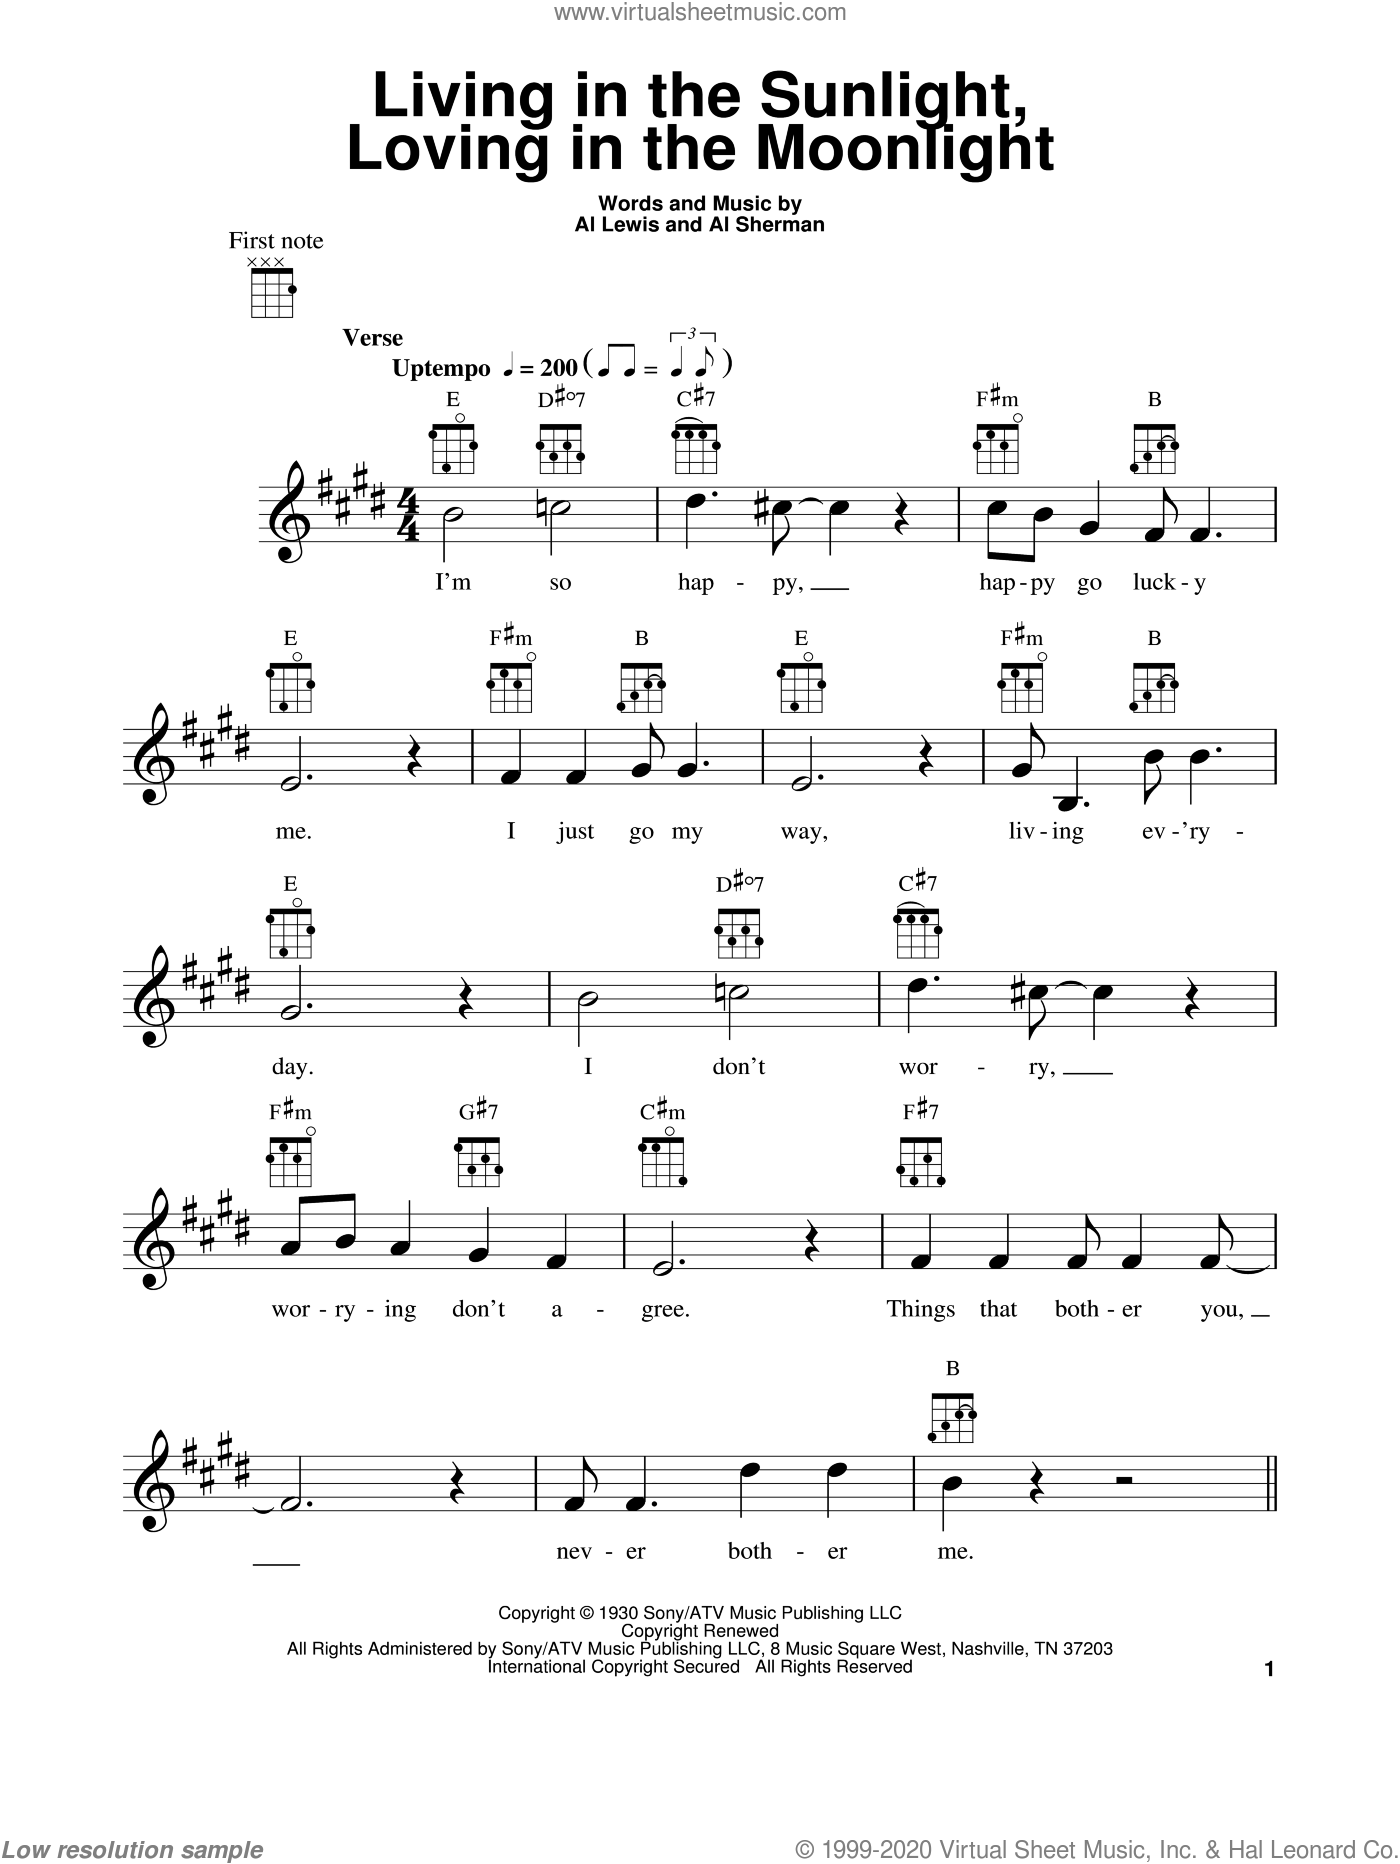 Living In The Sunlight, Loving In The Moonlight sheet music for ukulele by Al Lewis